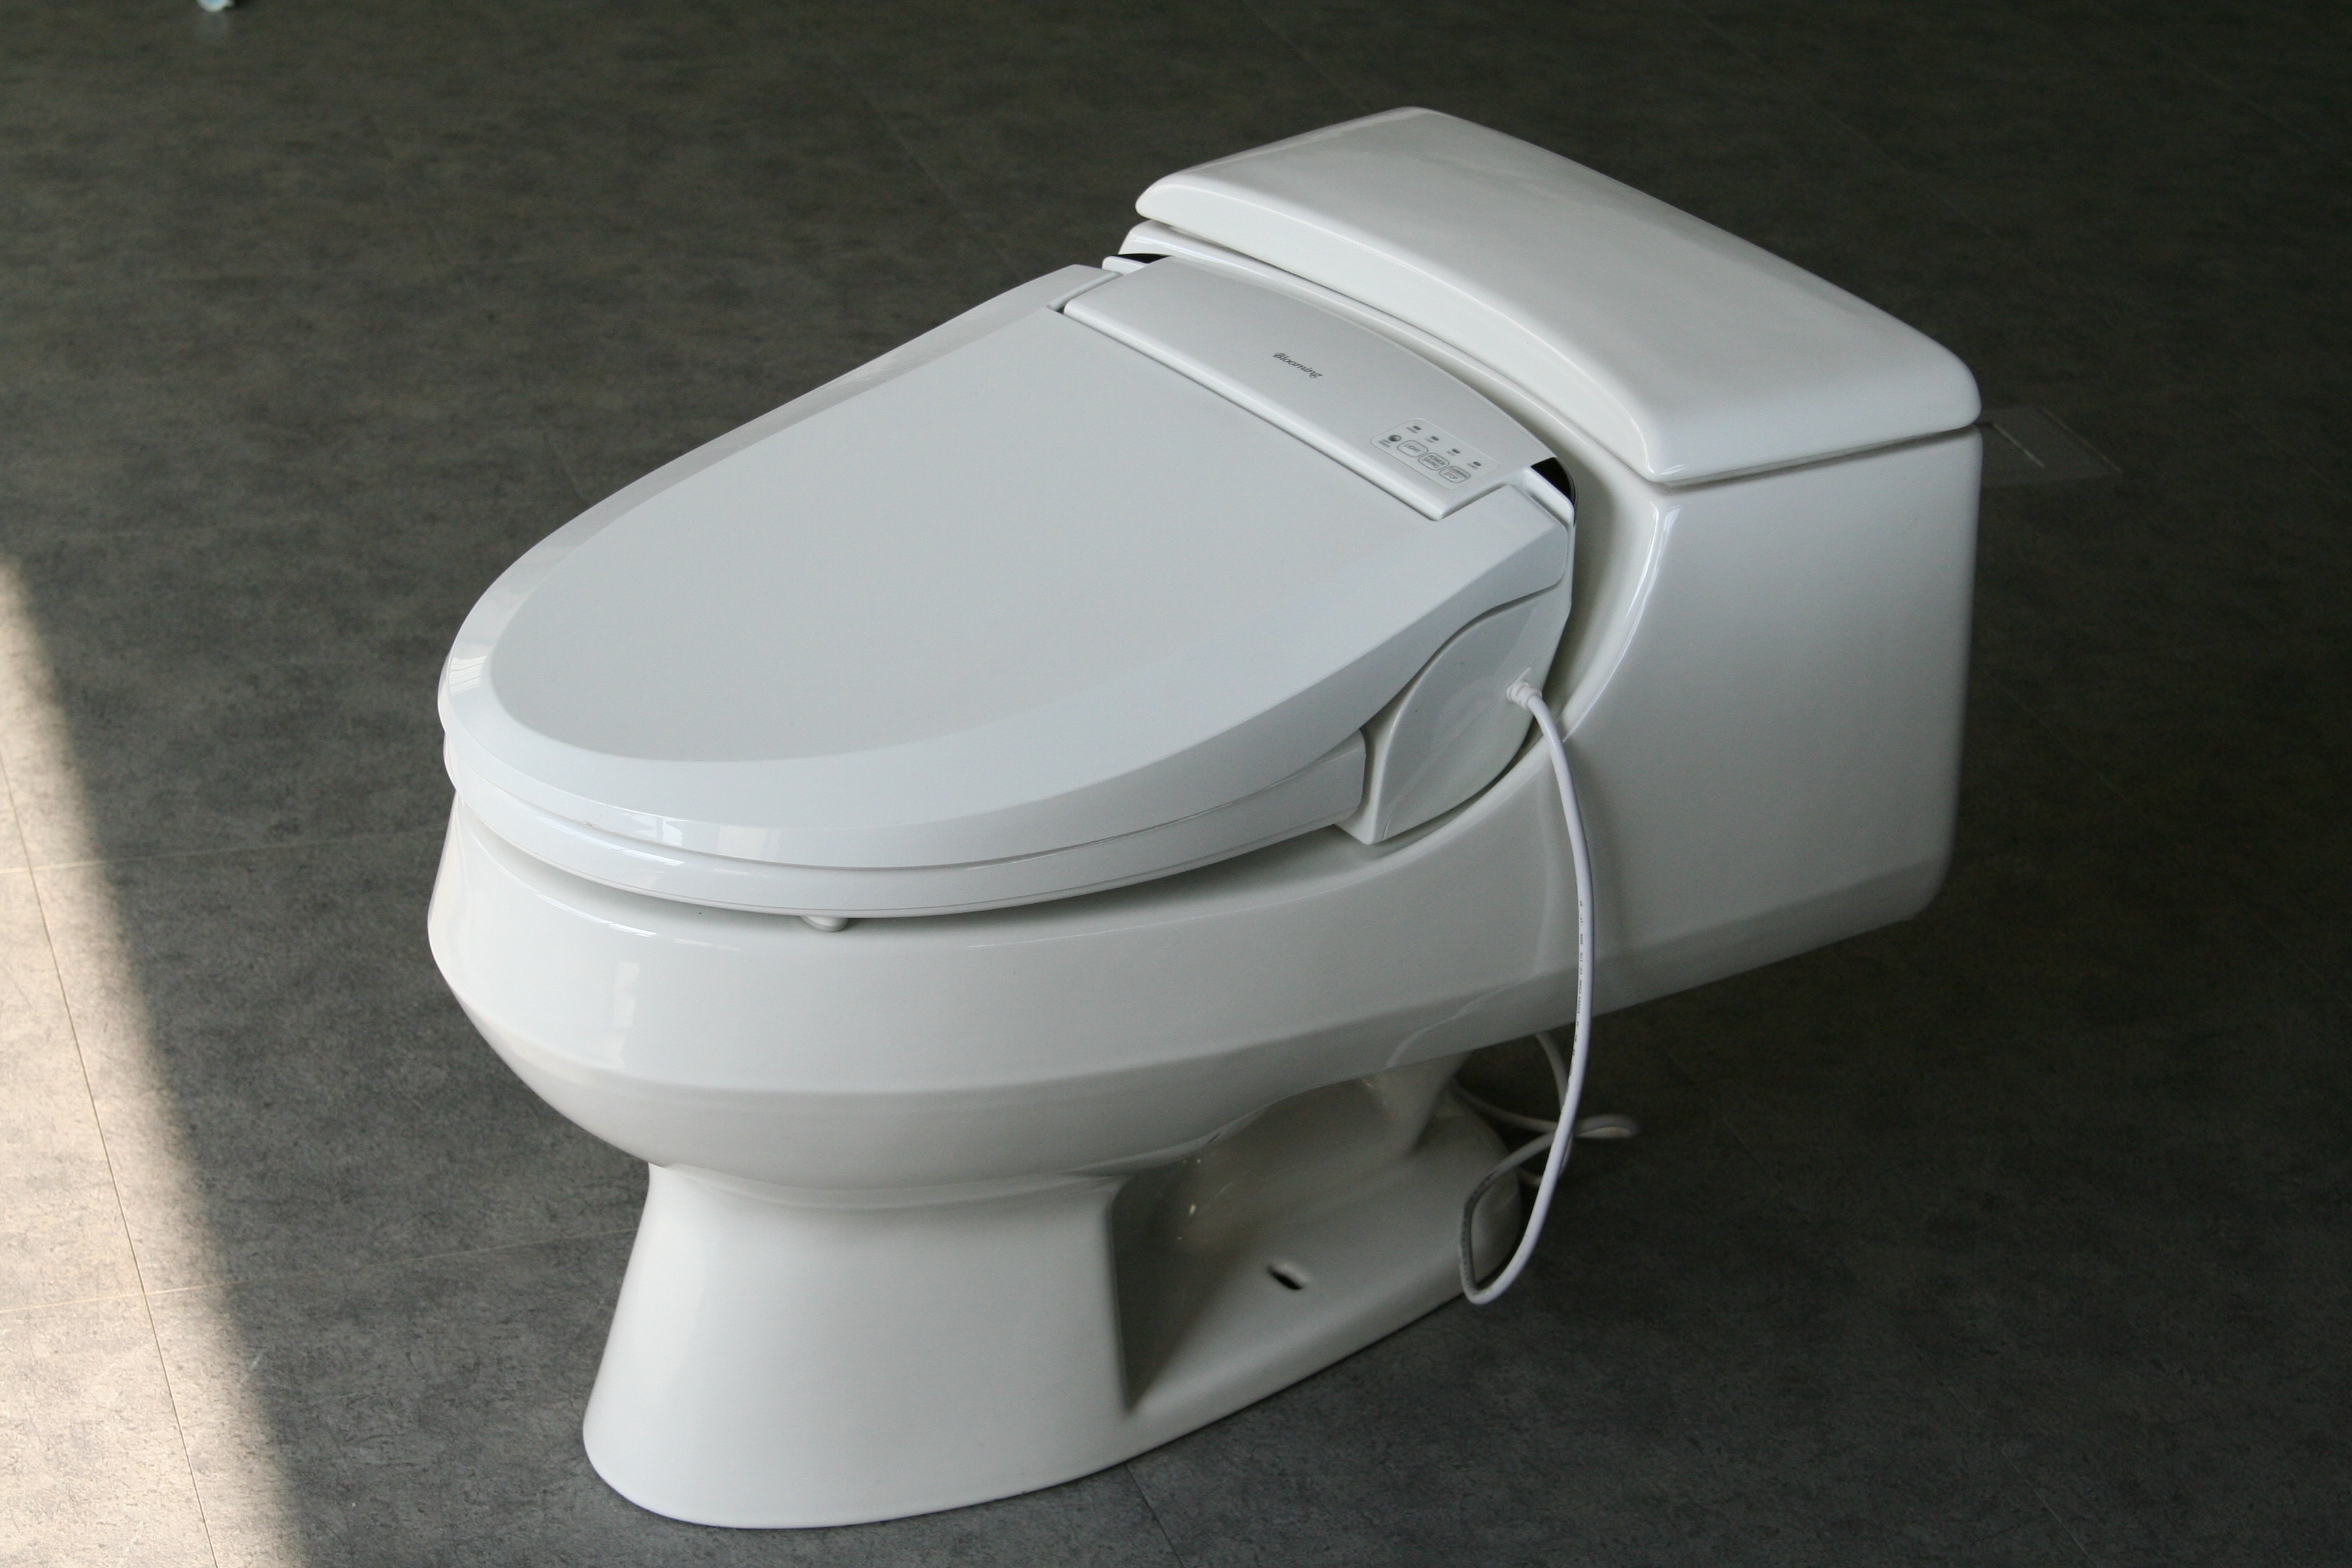 Best Bidet Seats For Kohler Rialto And San Raphael Toilets